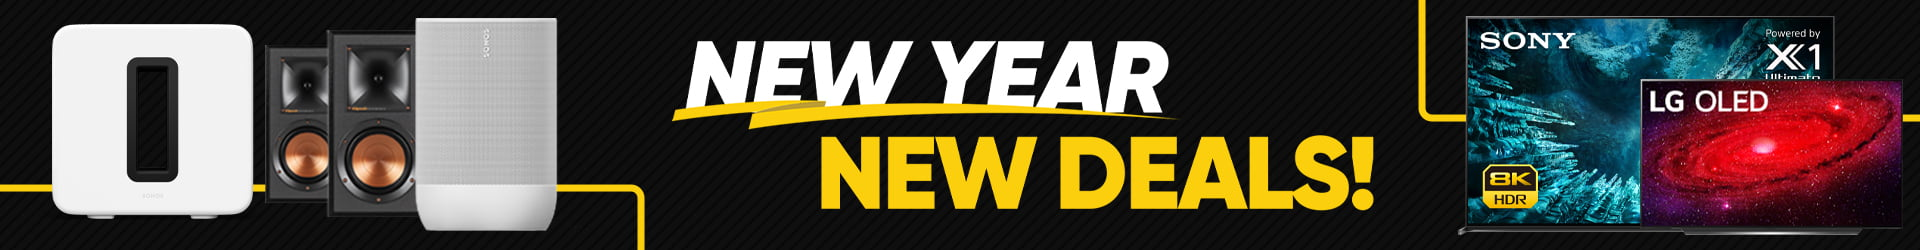 New Year New Deals Website Banner Promo Page